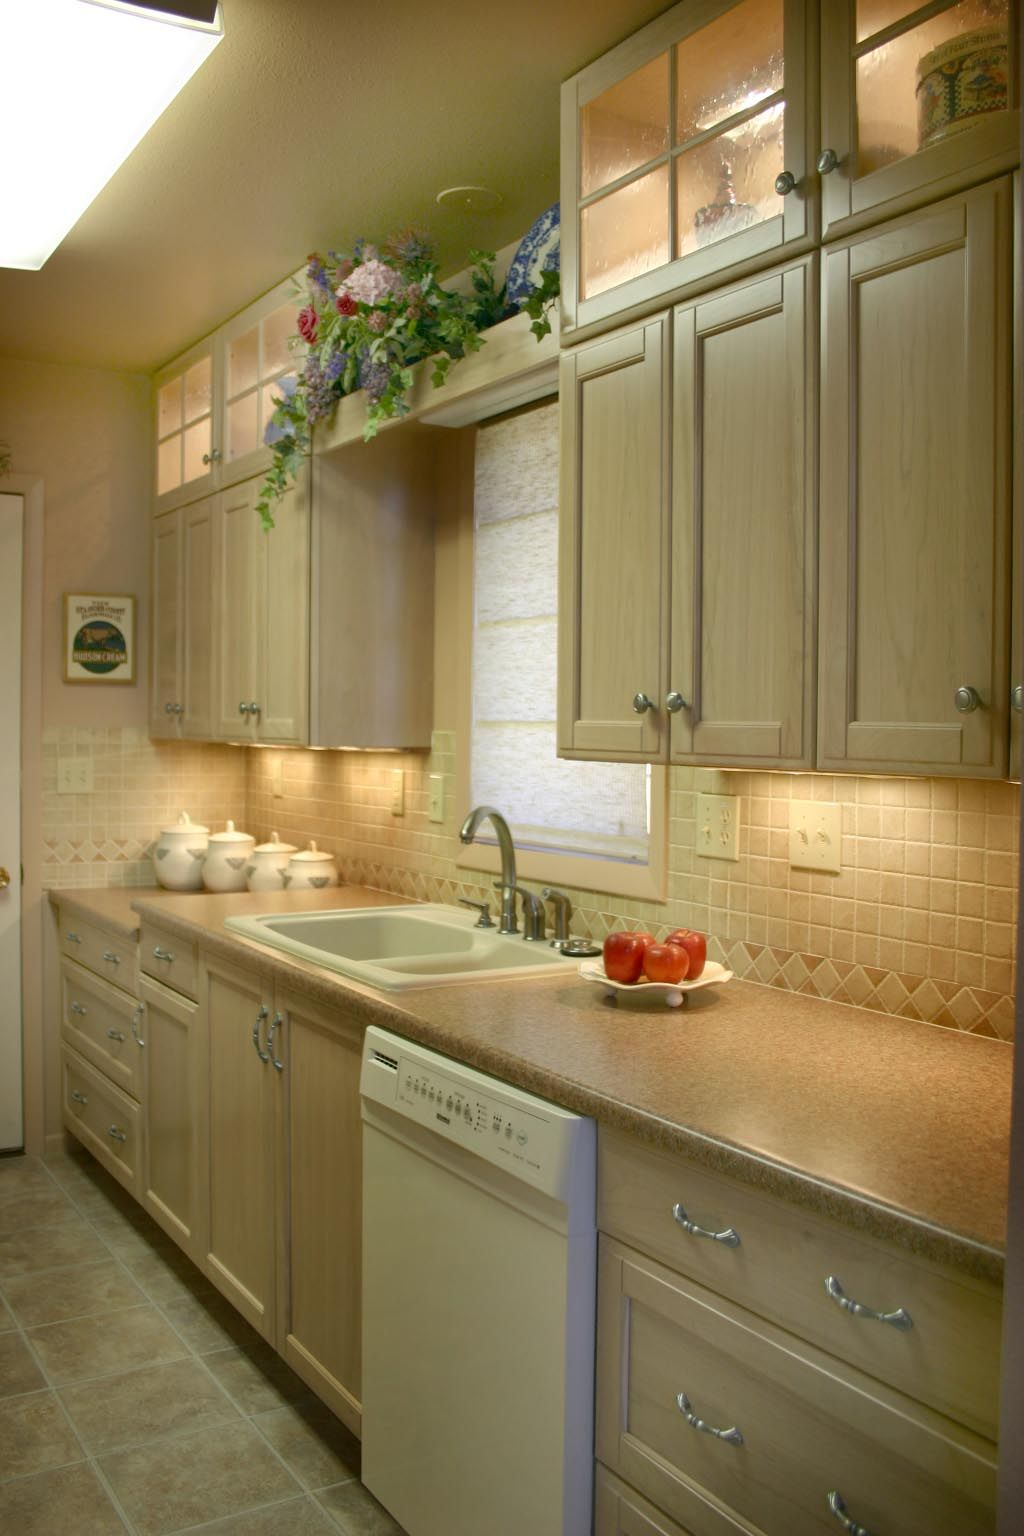 Stacked Wall Cabinets Lights Inside Wall Cabinets With Glass Doors Glass Cabinet Doors Kitchen And Bath Design Inside Cabinets